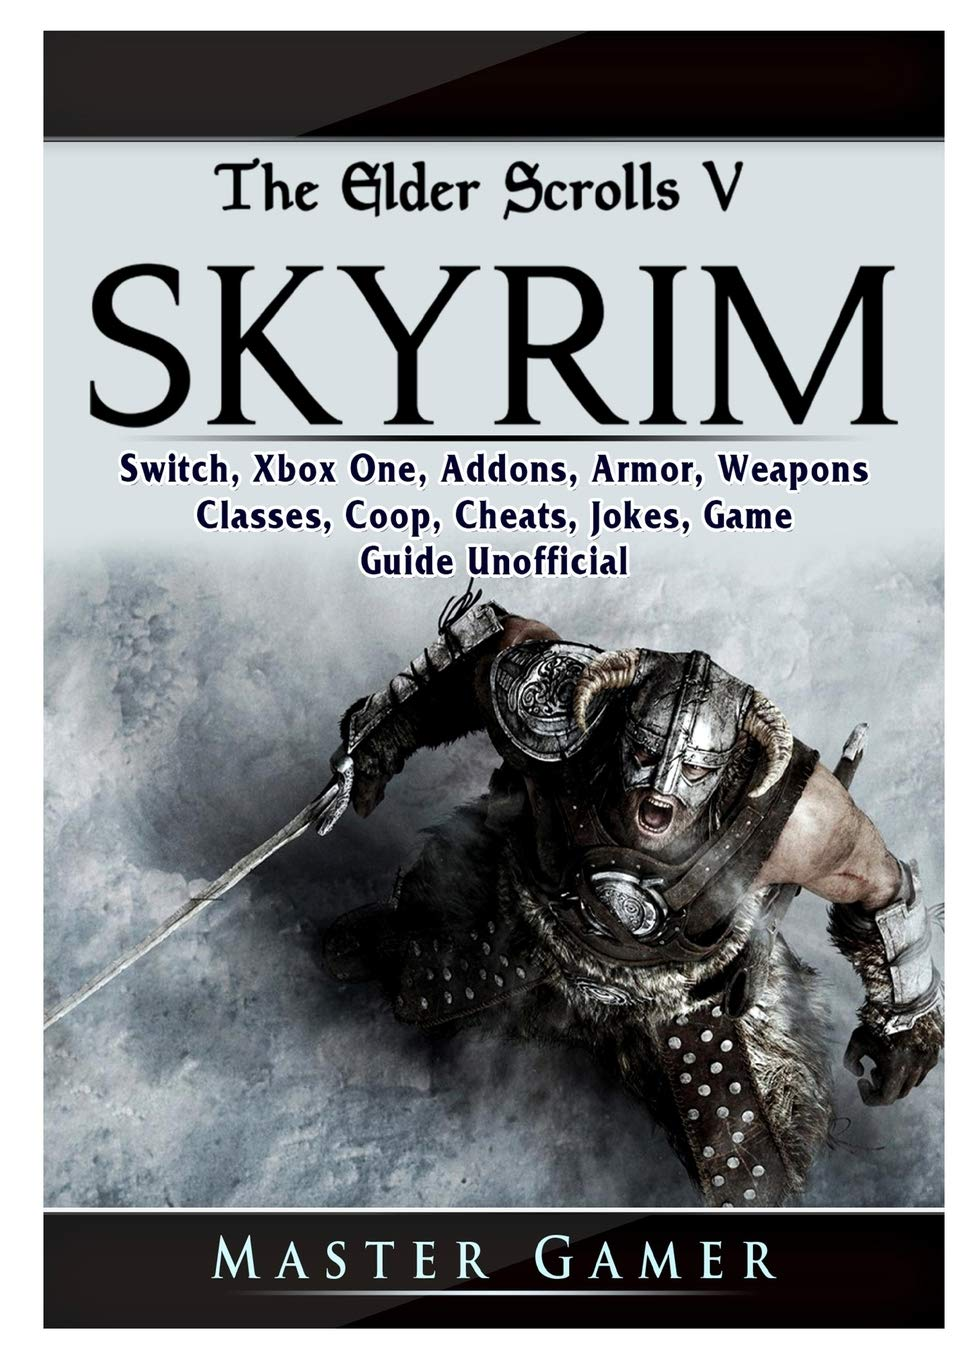 The Elder Scrolls V Skyrim, Switch, Xbox One, Addons, Armor ...